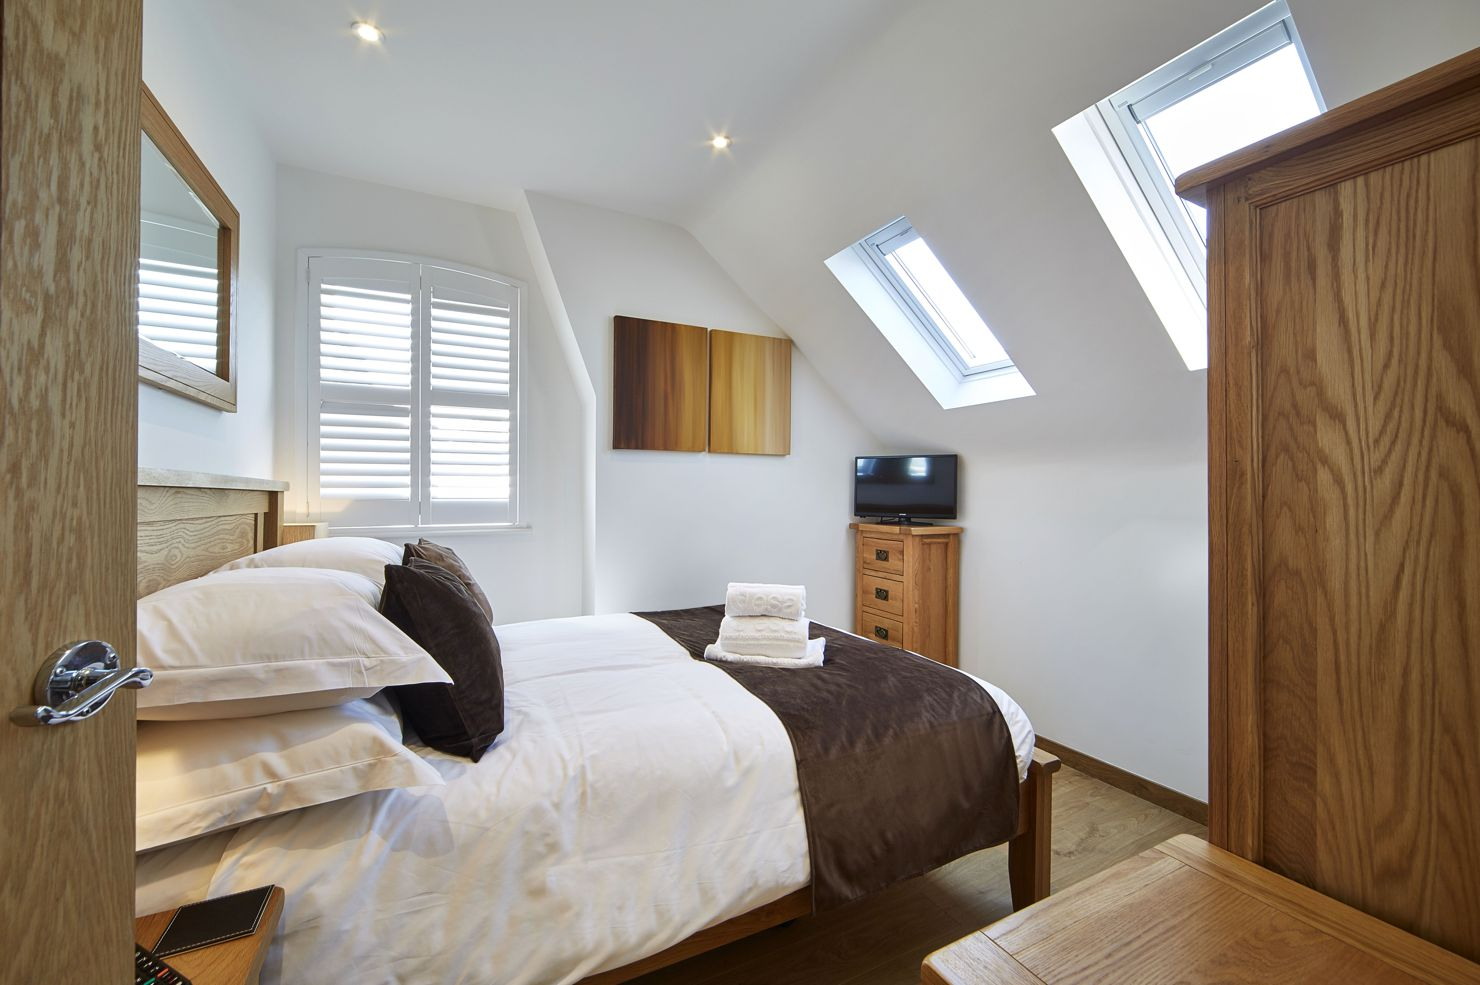 Reading-Serviced-Apartments-–-Castle-Crescent-Short-Stay-Accommodation.-Budget-Accommodation-Reading---Cheap-Airbnb-Short-Stay-Apartments-UK-|-Urban-Stay